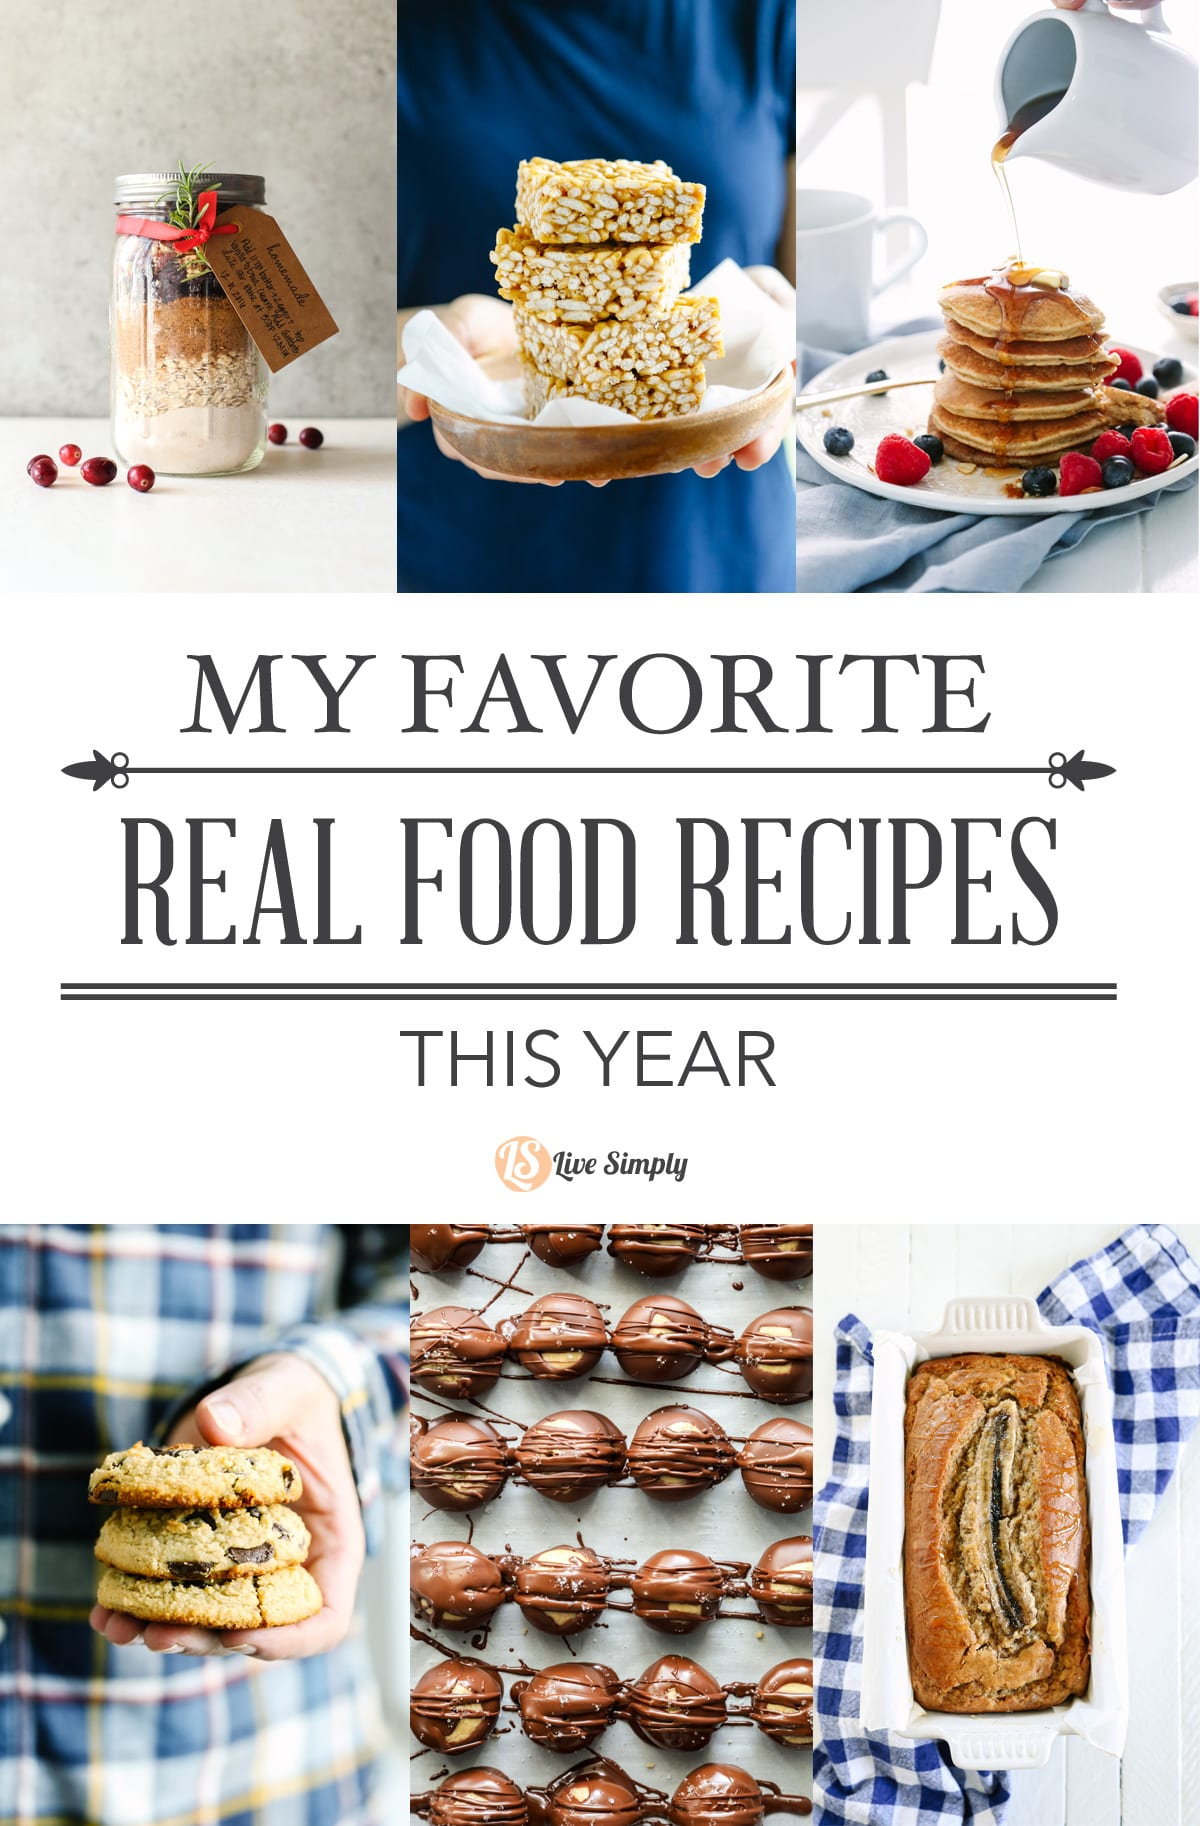 My Favorite Real Food Recipes from 2016